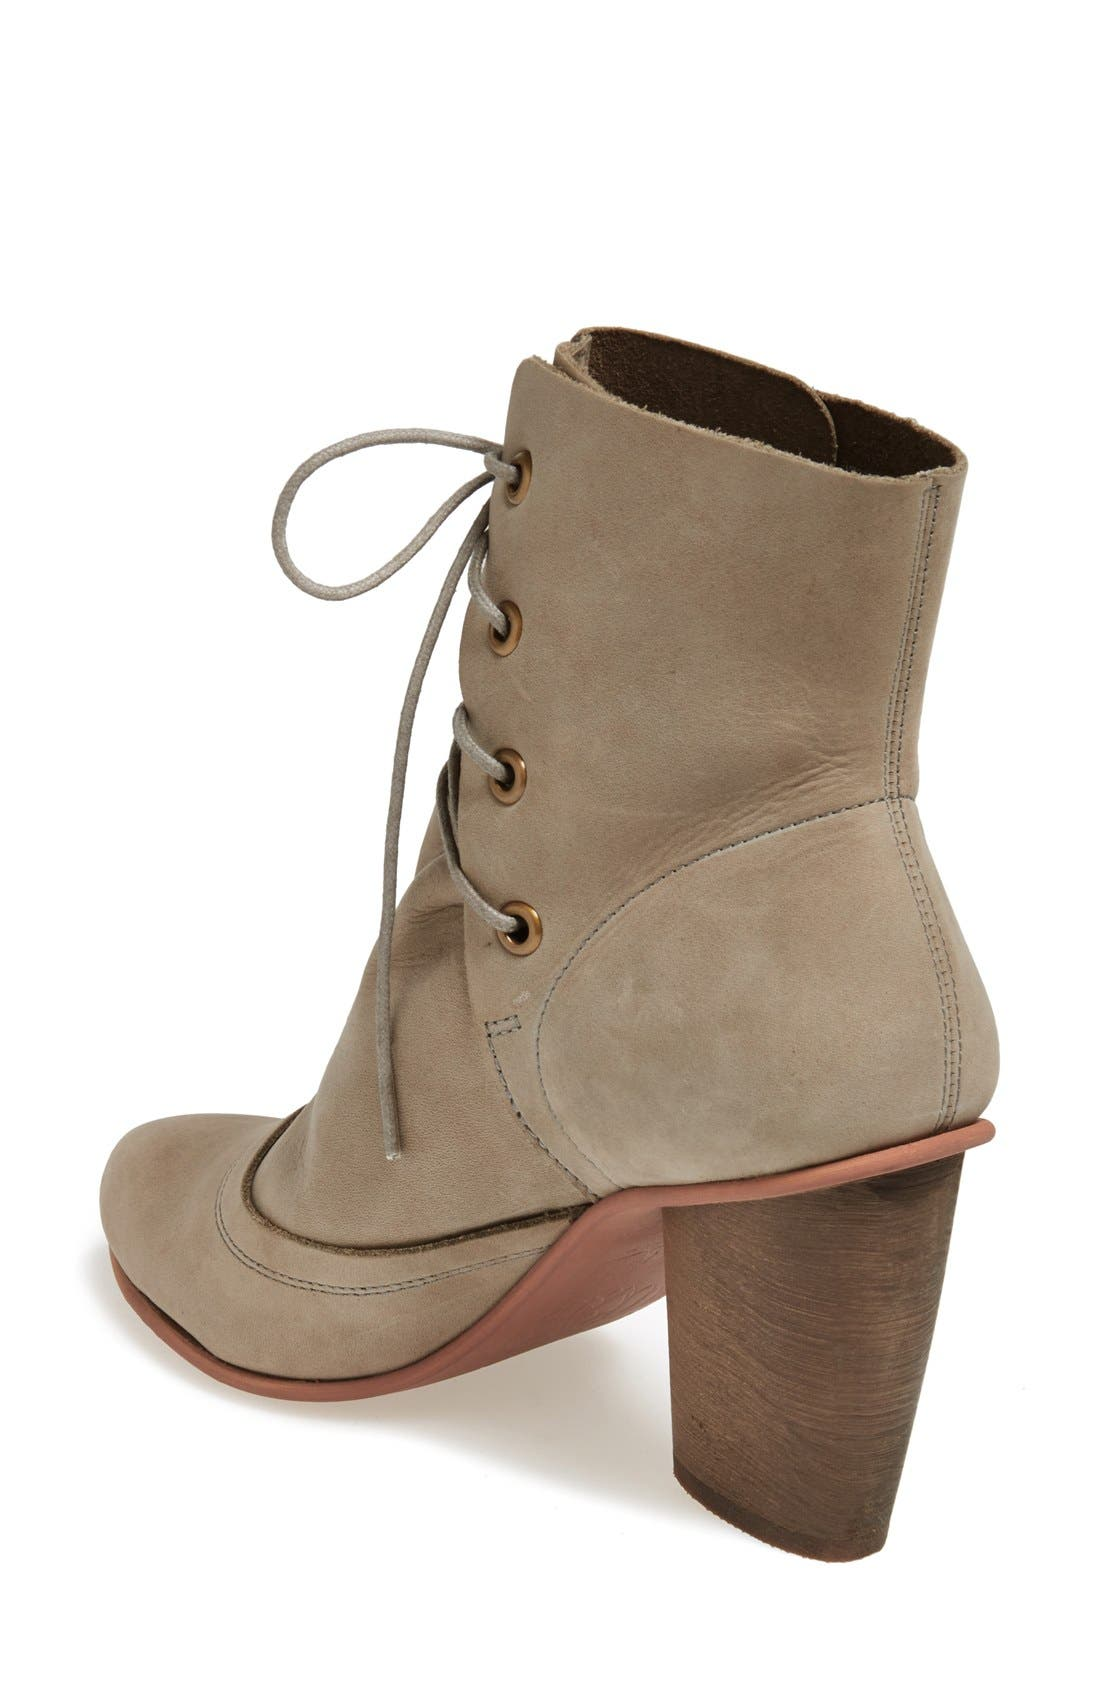 Alternate Image 2  - J SHOES 'Sadie' Leather Bootie (Women)